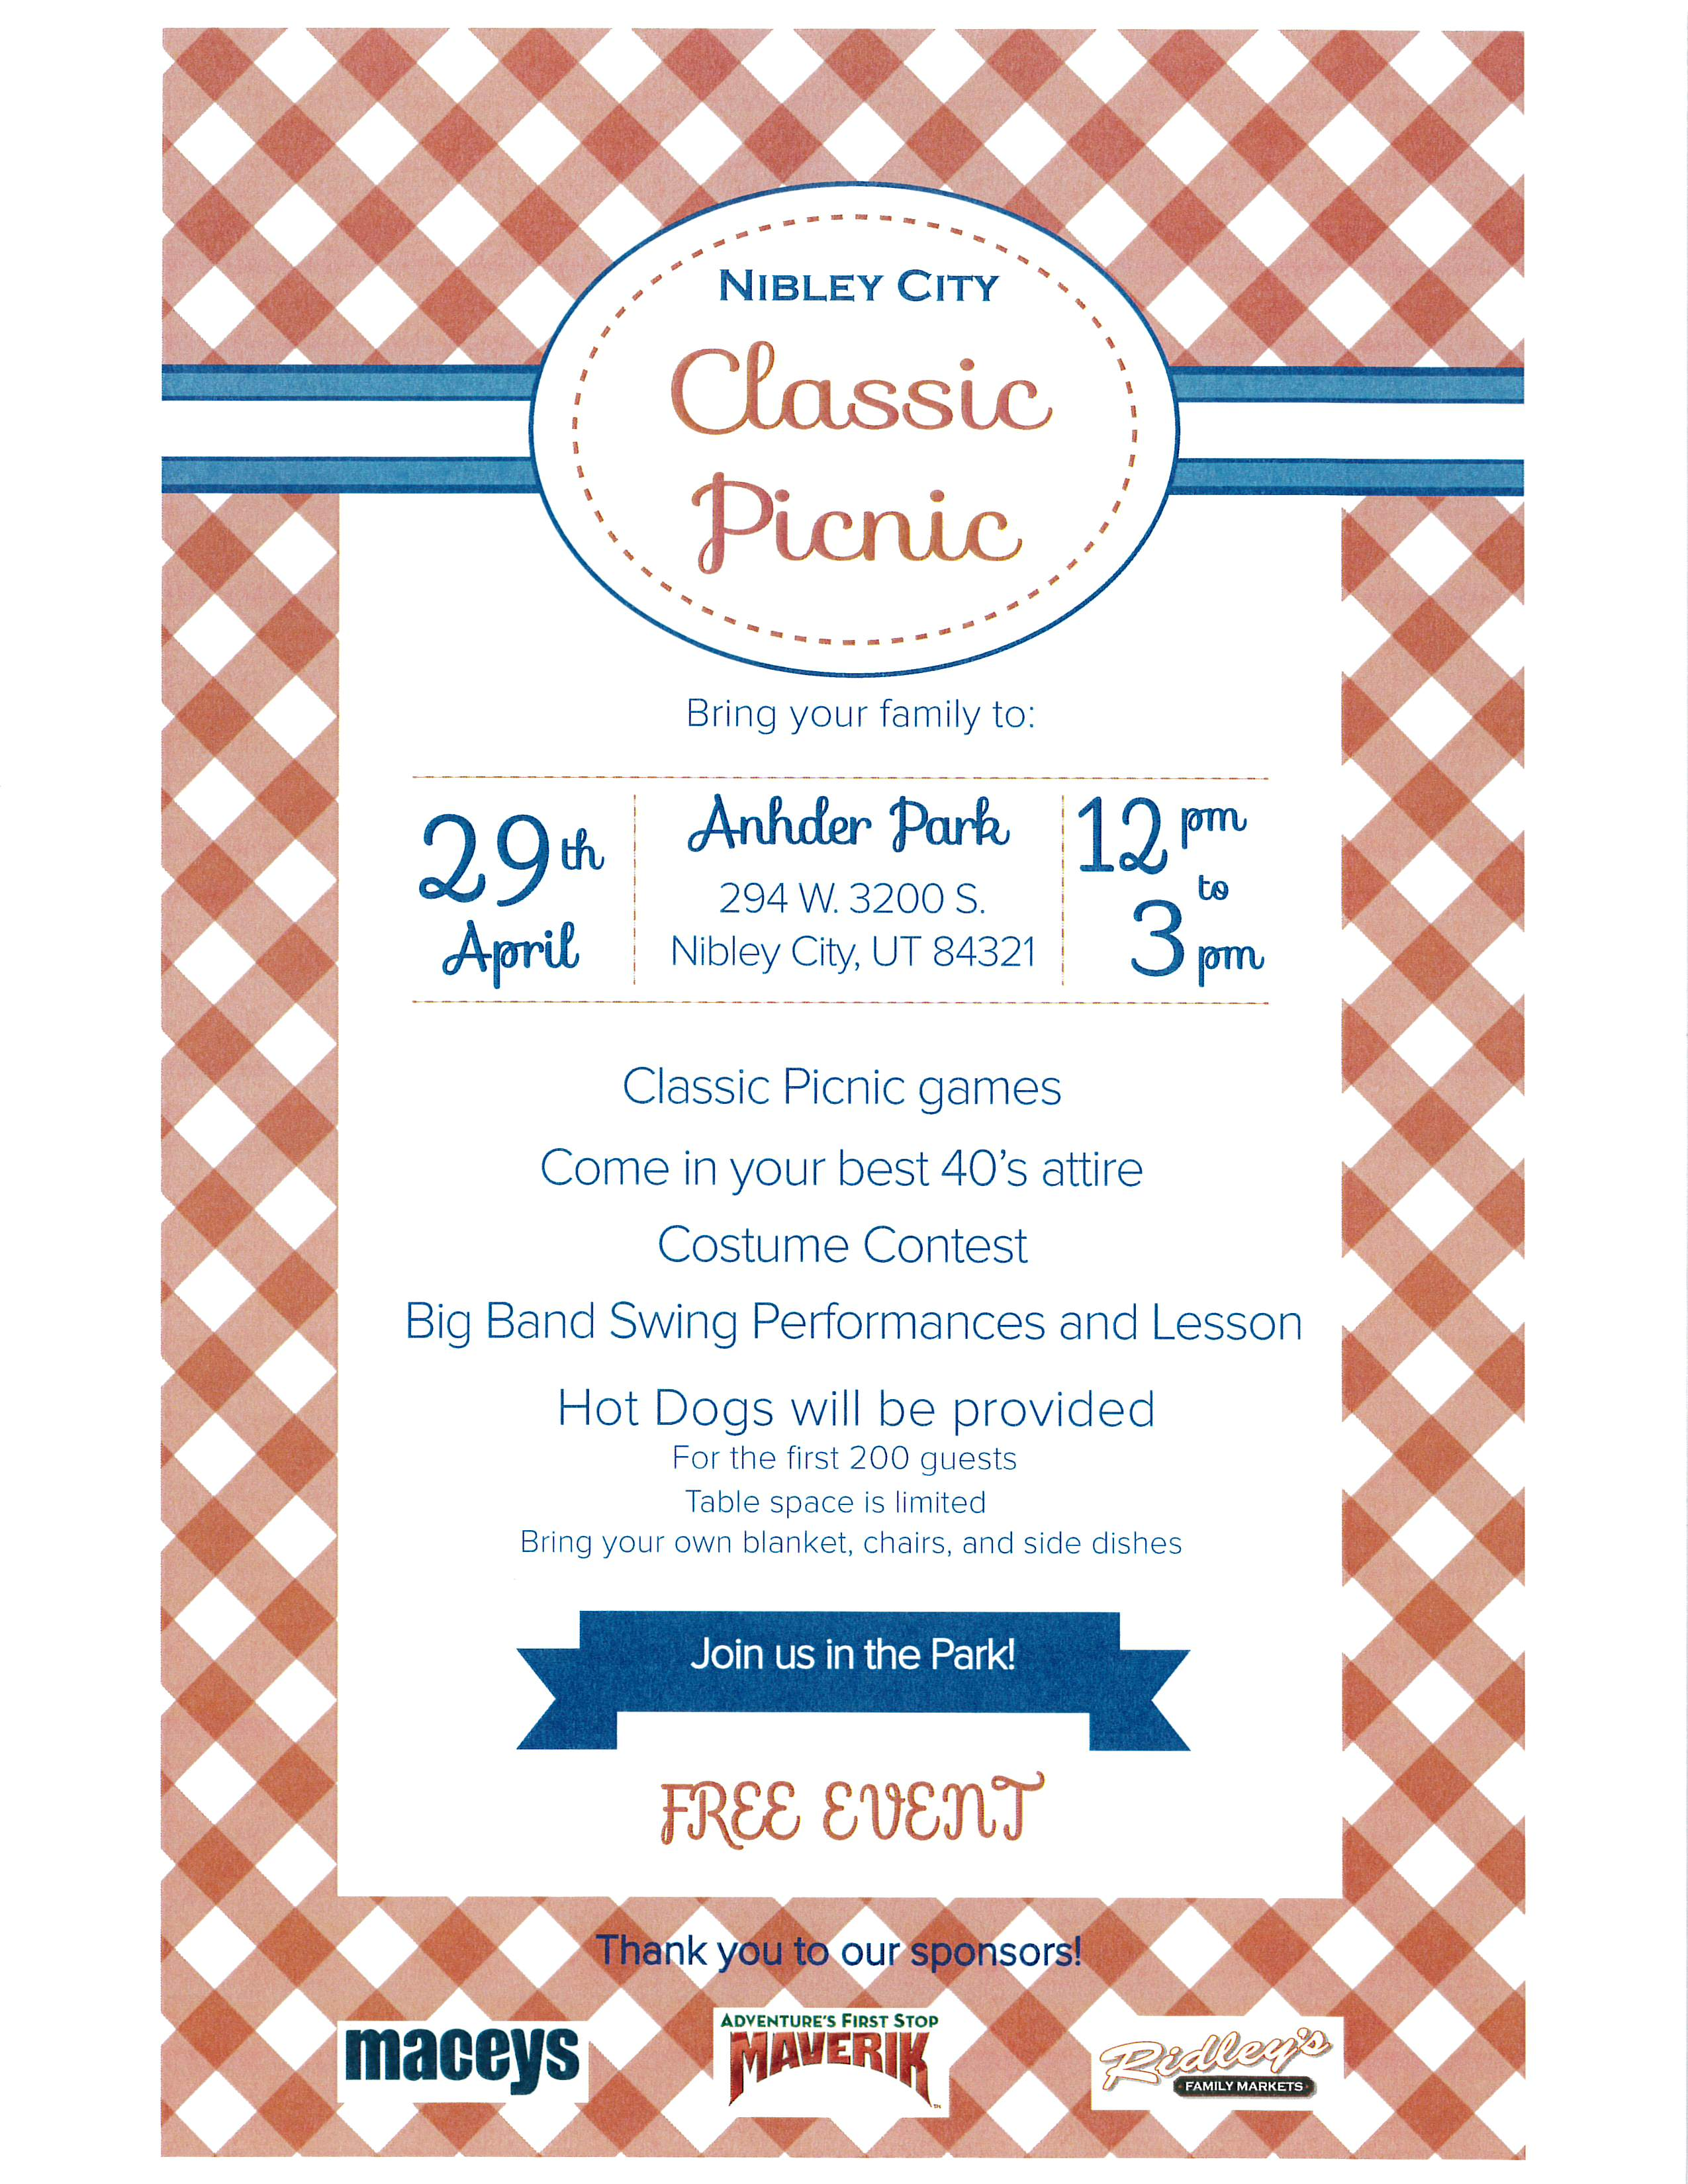 2017 Classic Picnic Flyer Image